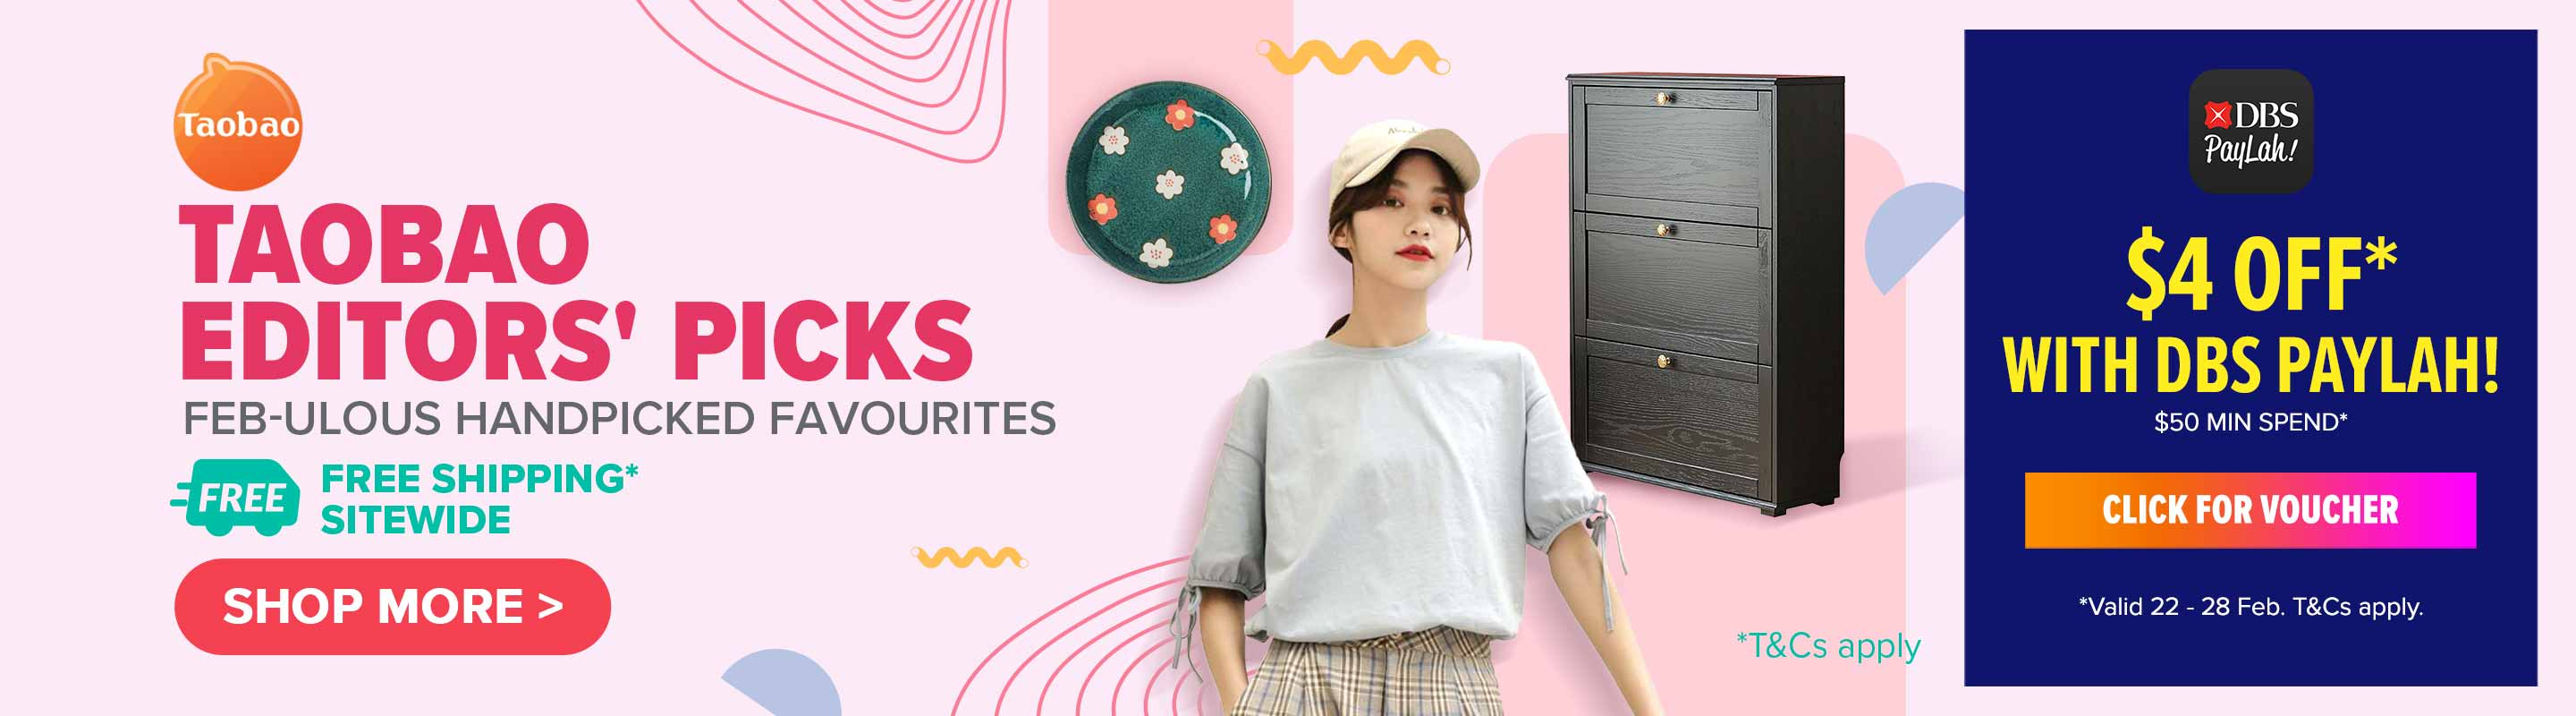 Taobao Editors' Picks